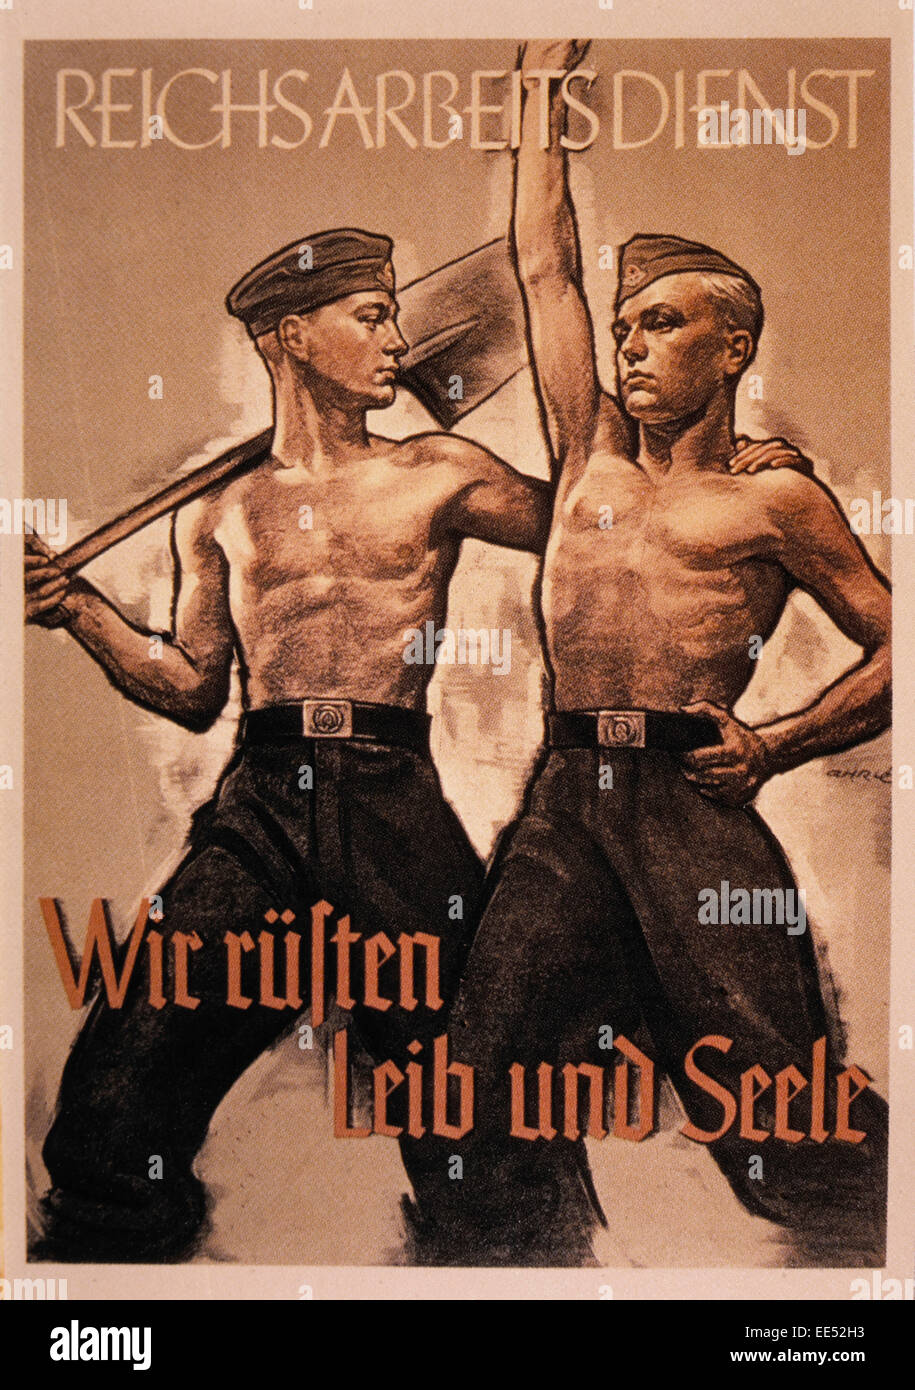 Nazi Germany Labor Service Poster, Reichsarbeitsdienst (We Prepare our Body and Soul), circa mid-1930's - Stock Image